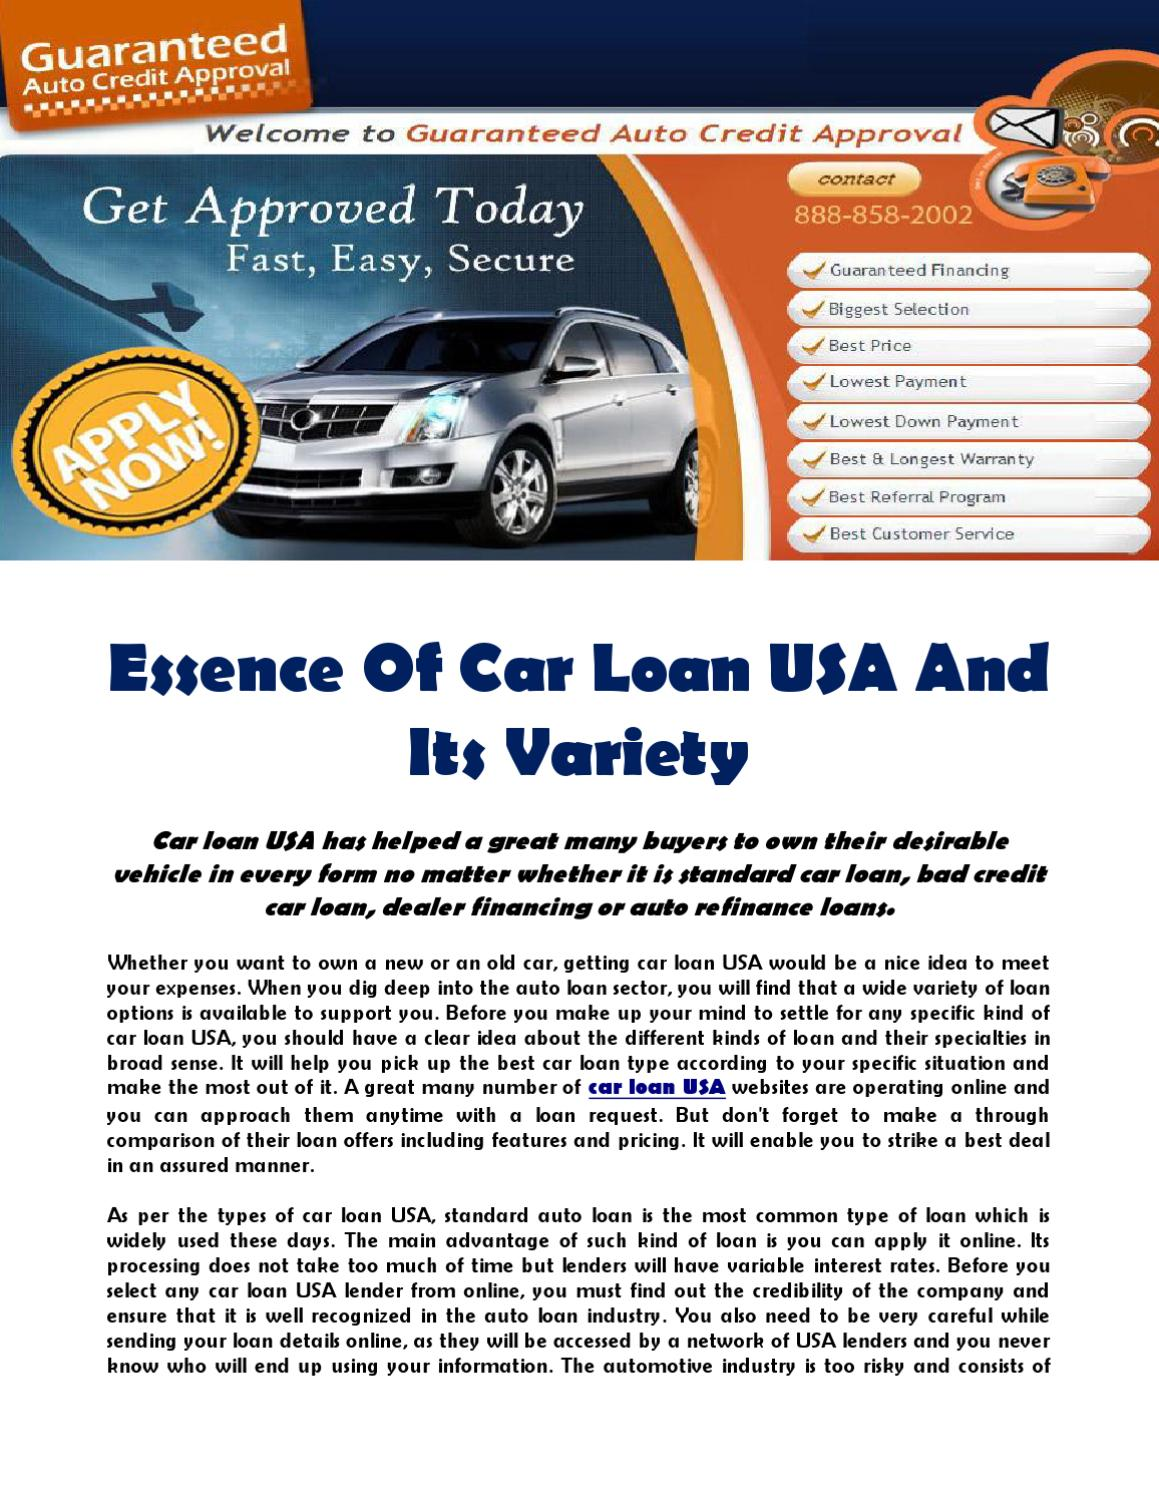 Bad Credit Auto Refinance >> Essence Of Car Loan Usa And Its Variety By Guaranteed Auto